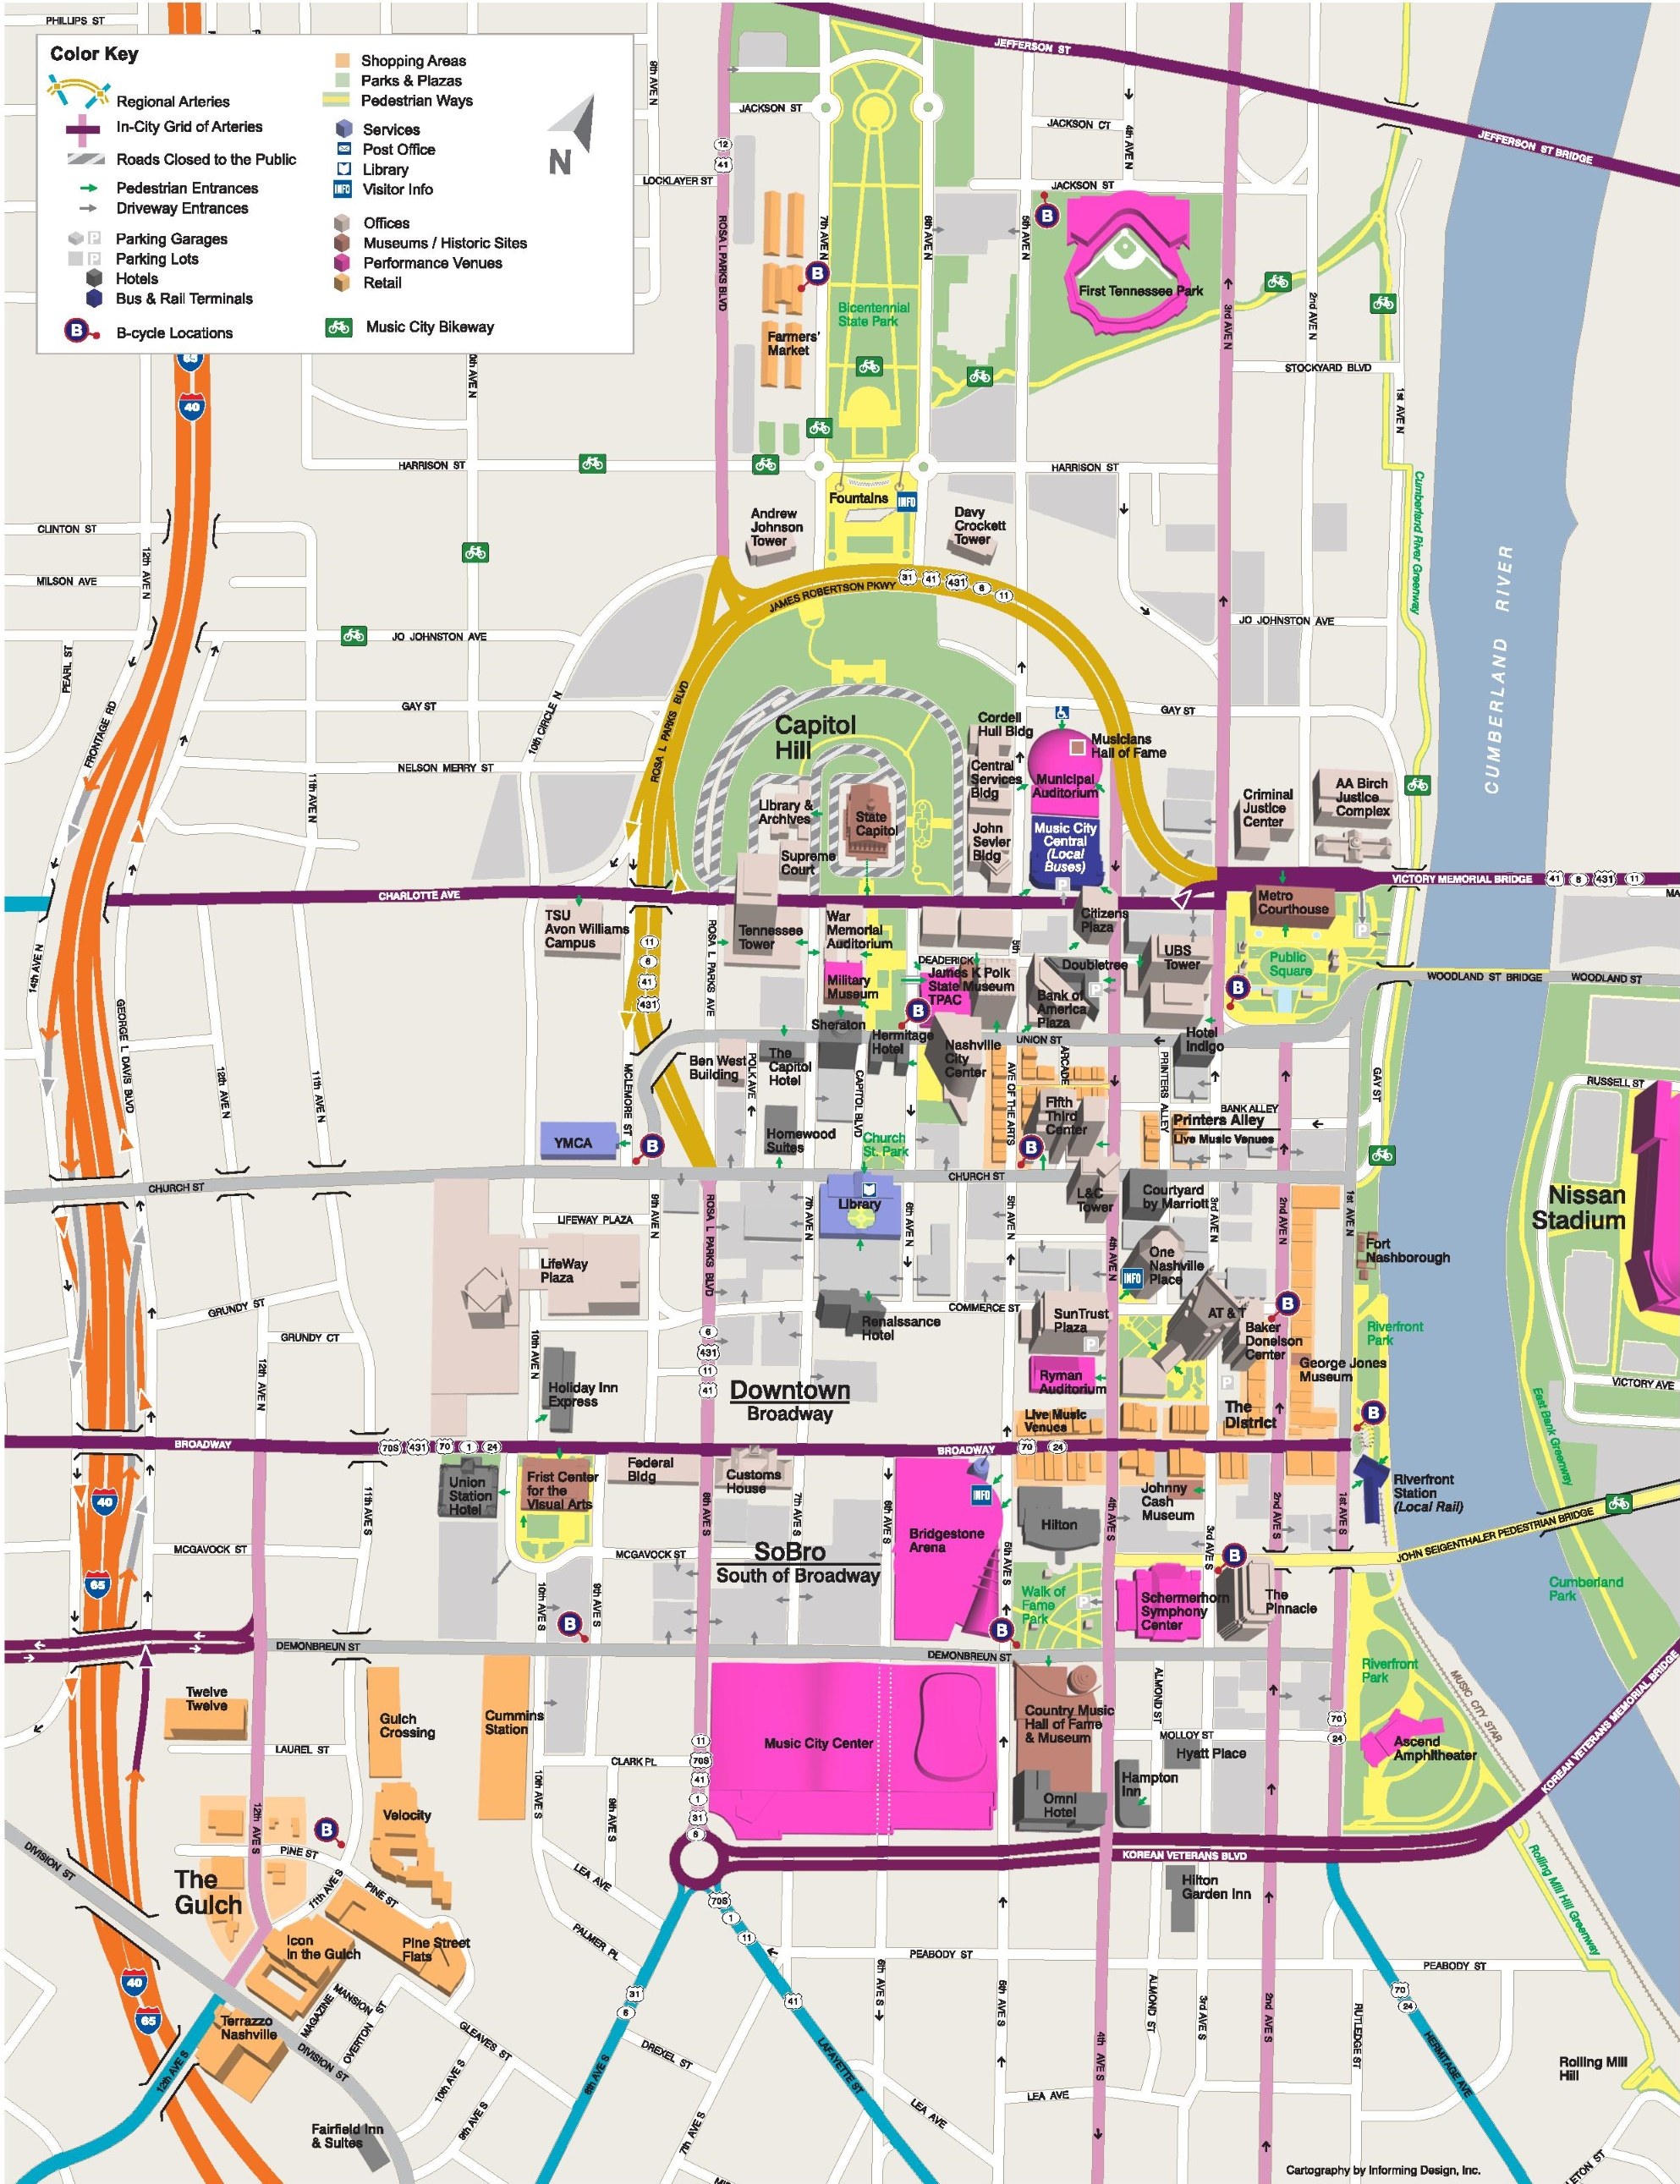 Nashville tourist attractions map – Tourist Attractions Map In Nashville